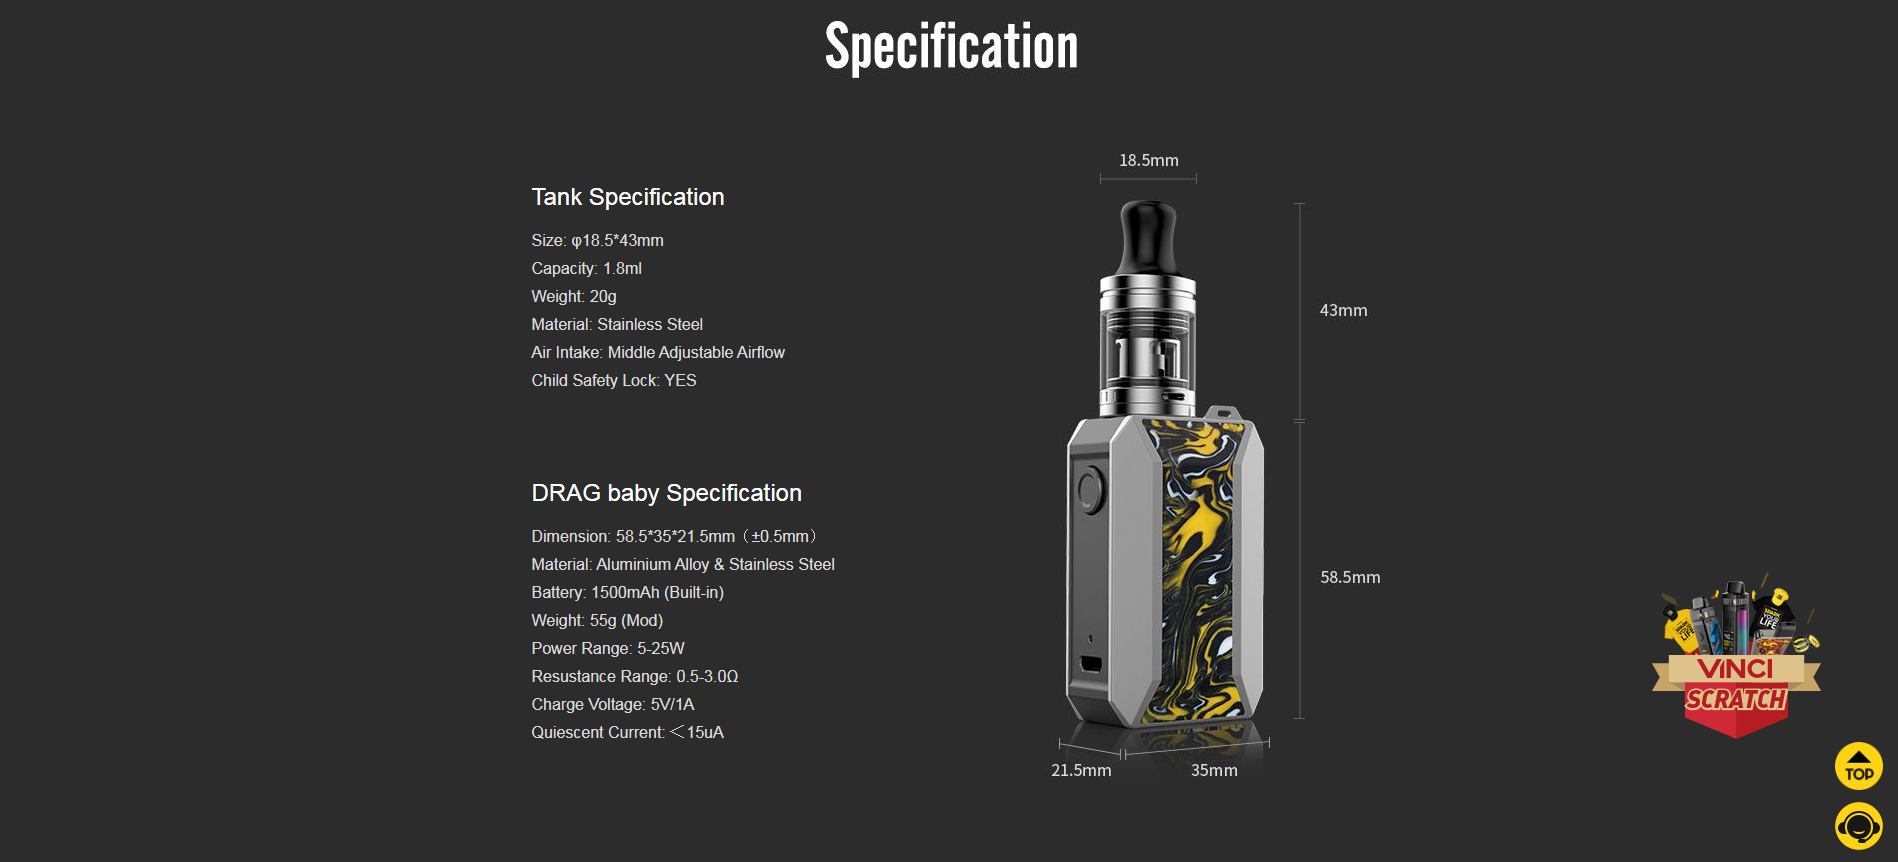 DRAG SPECIFICATIONS